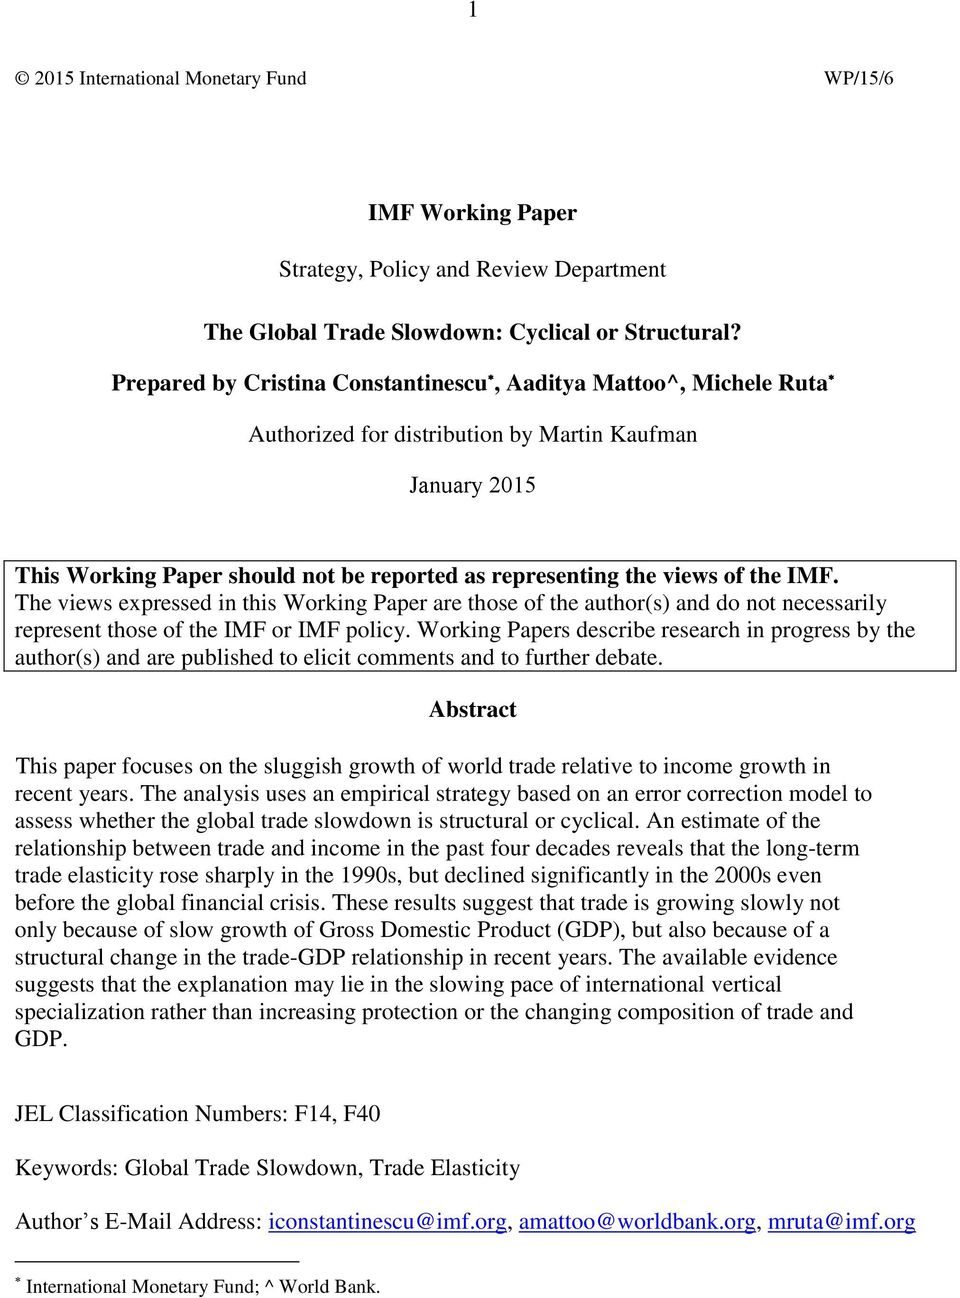 the IMF. The views expressed in this Working Paper are those of the author(s) and do not necessarily represent those of the IMF or IMF policy.